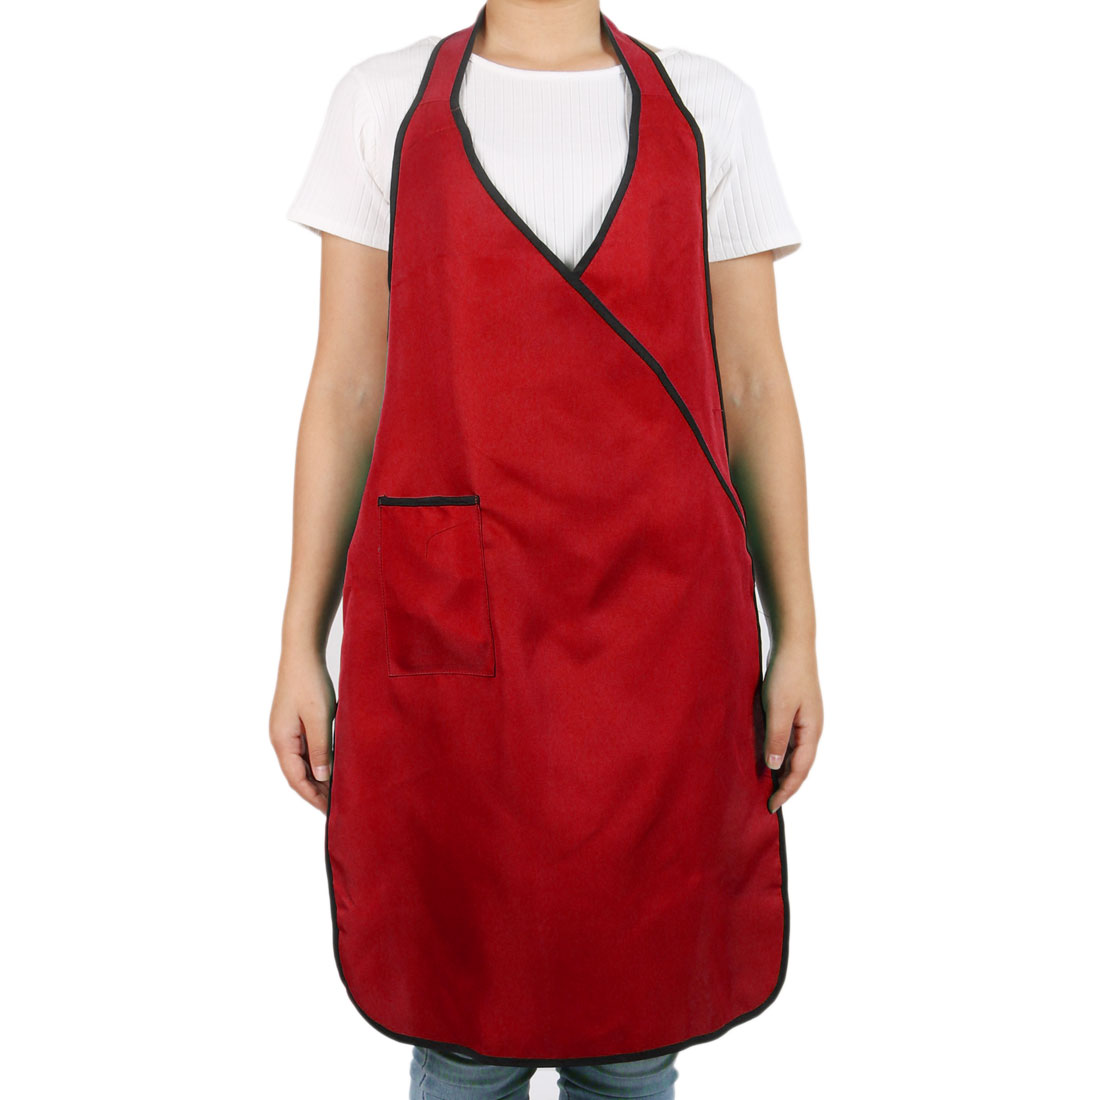 Home Kitchenwre Nylon Patch Pocket Resistant Oil Water Cooking Bib Apron Red